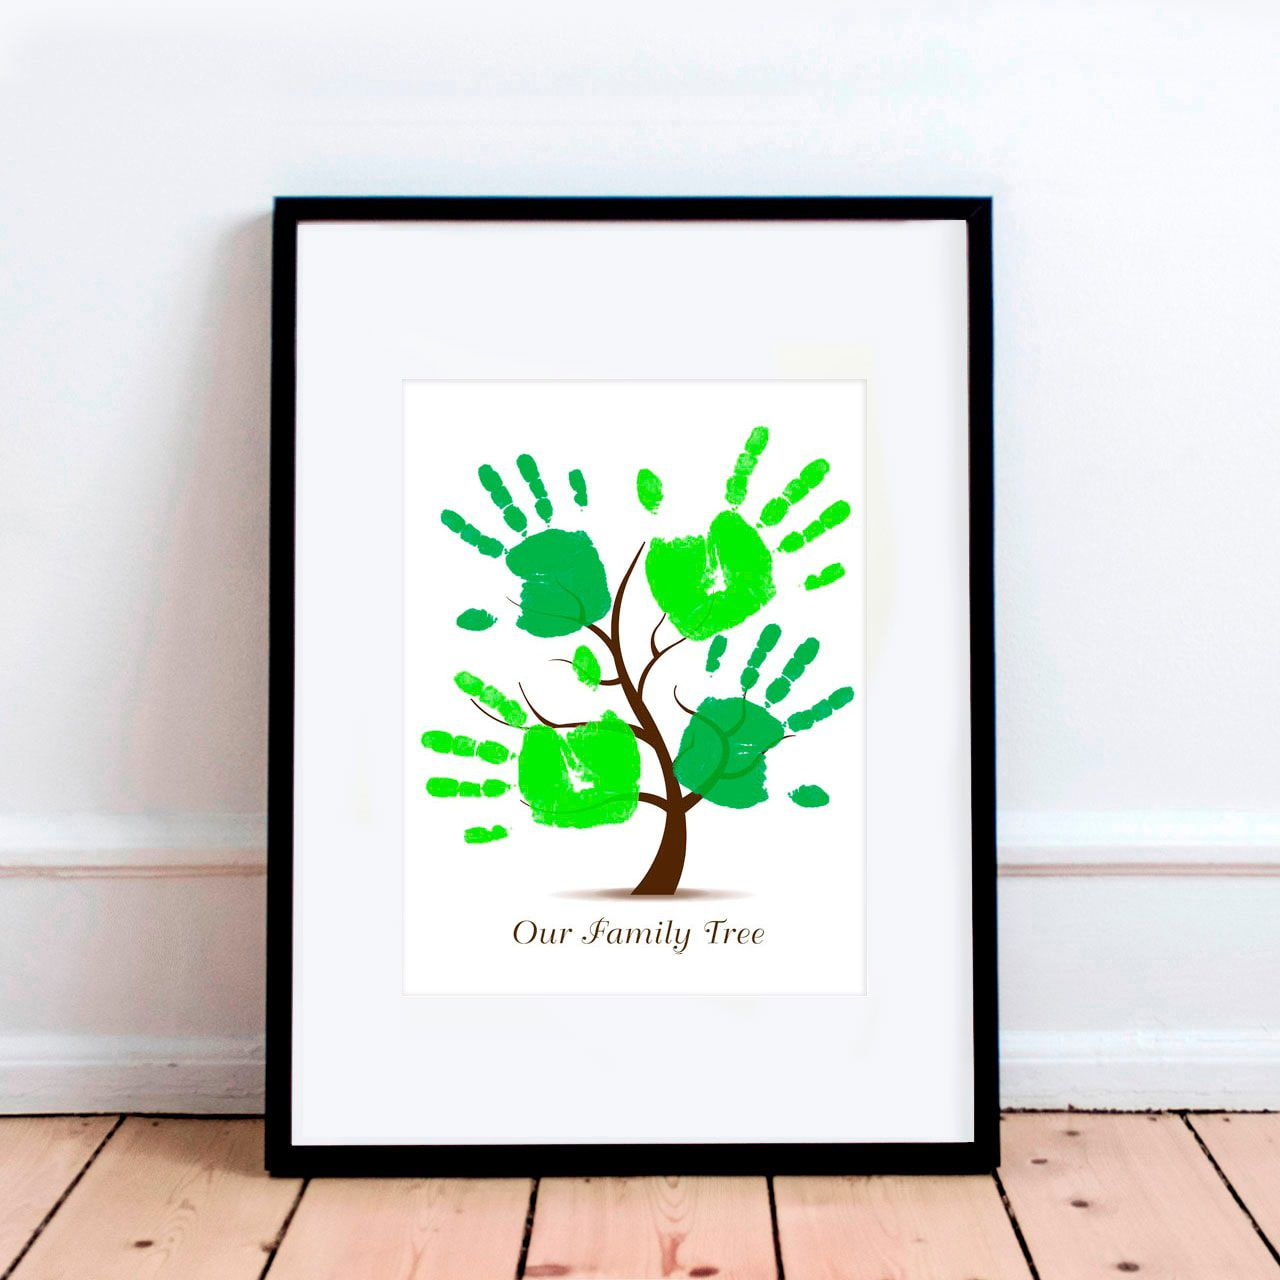 012 Outstanding Family Tree For Baby Book Template Inspiration  PrintableFull